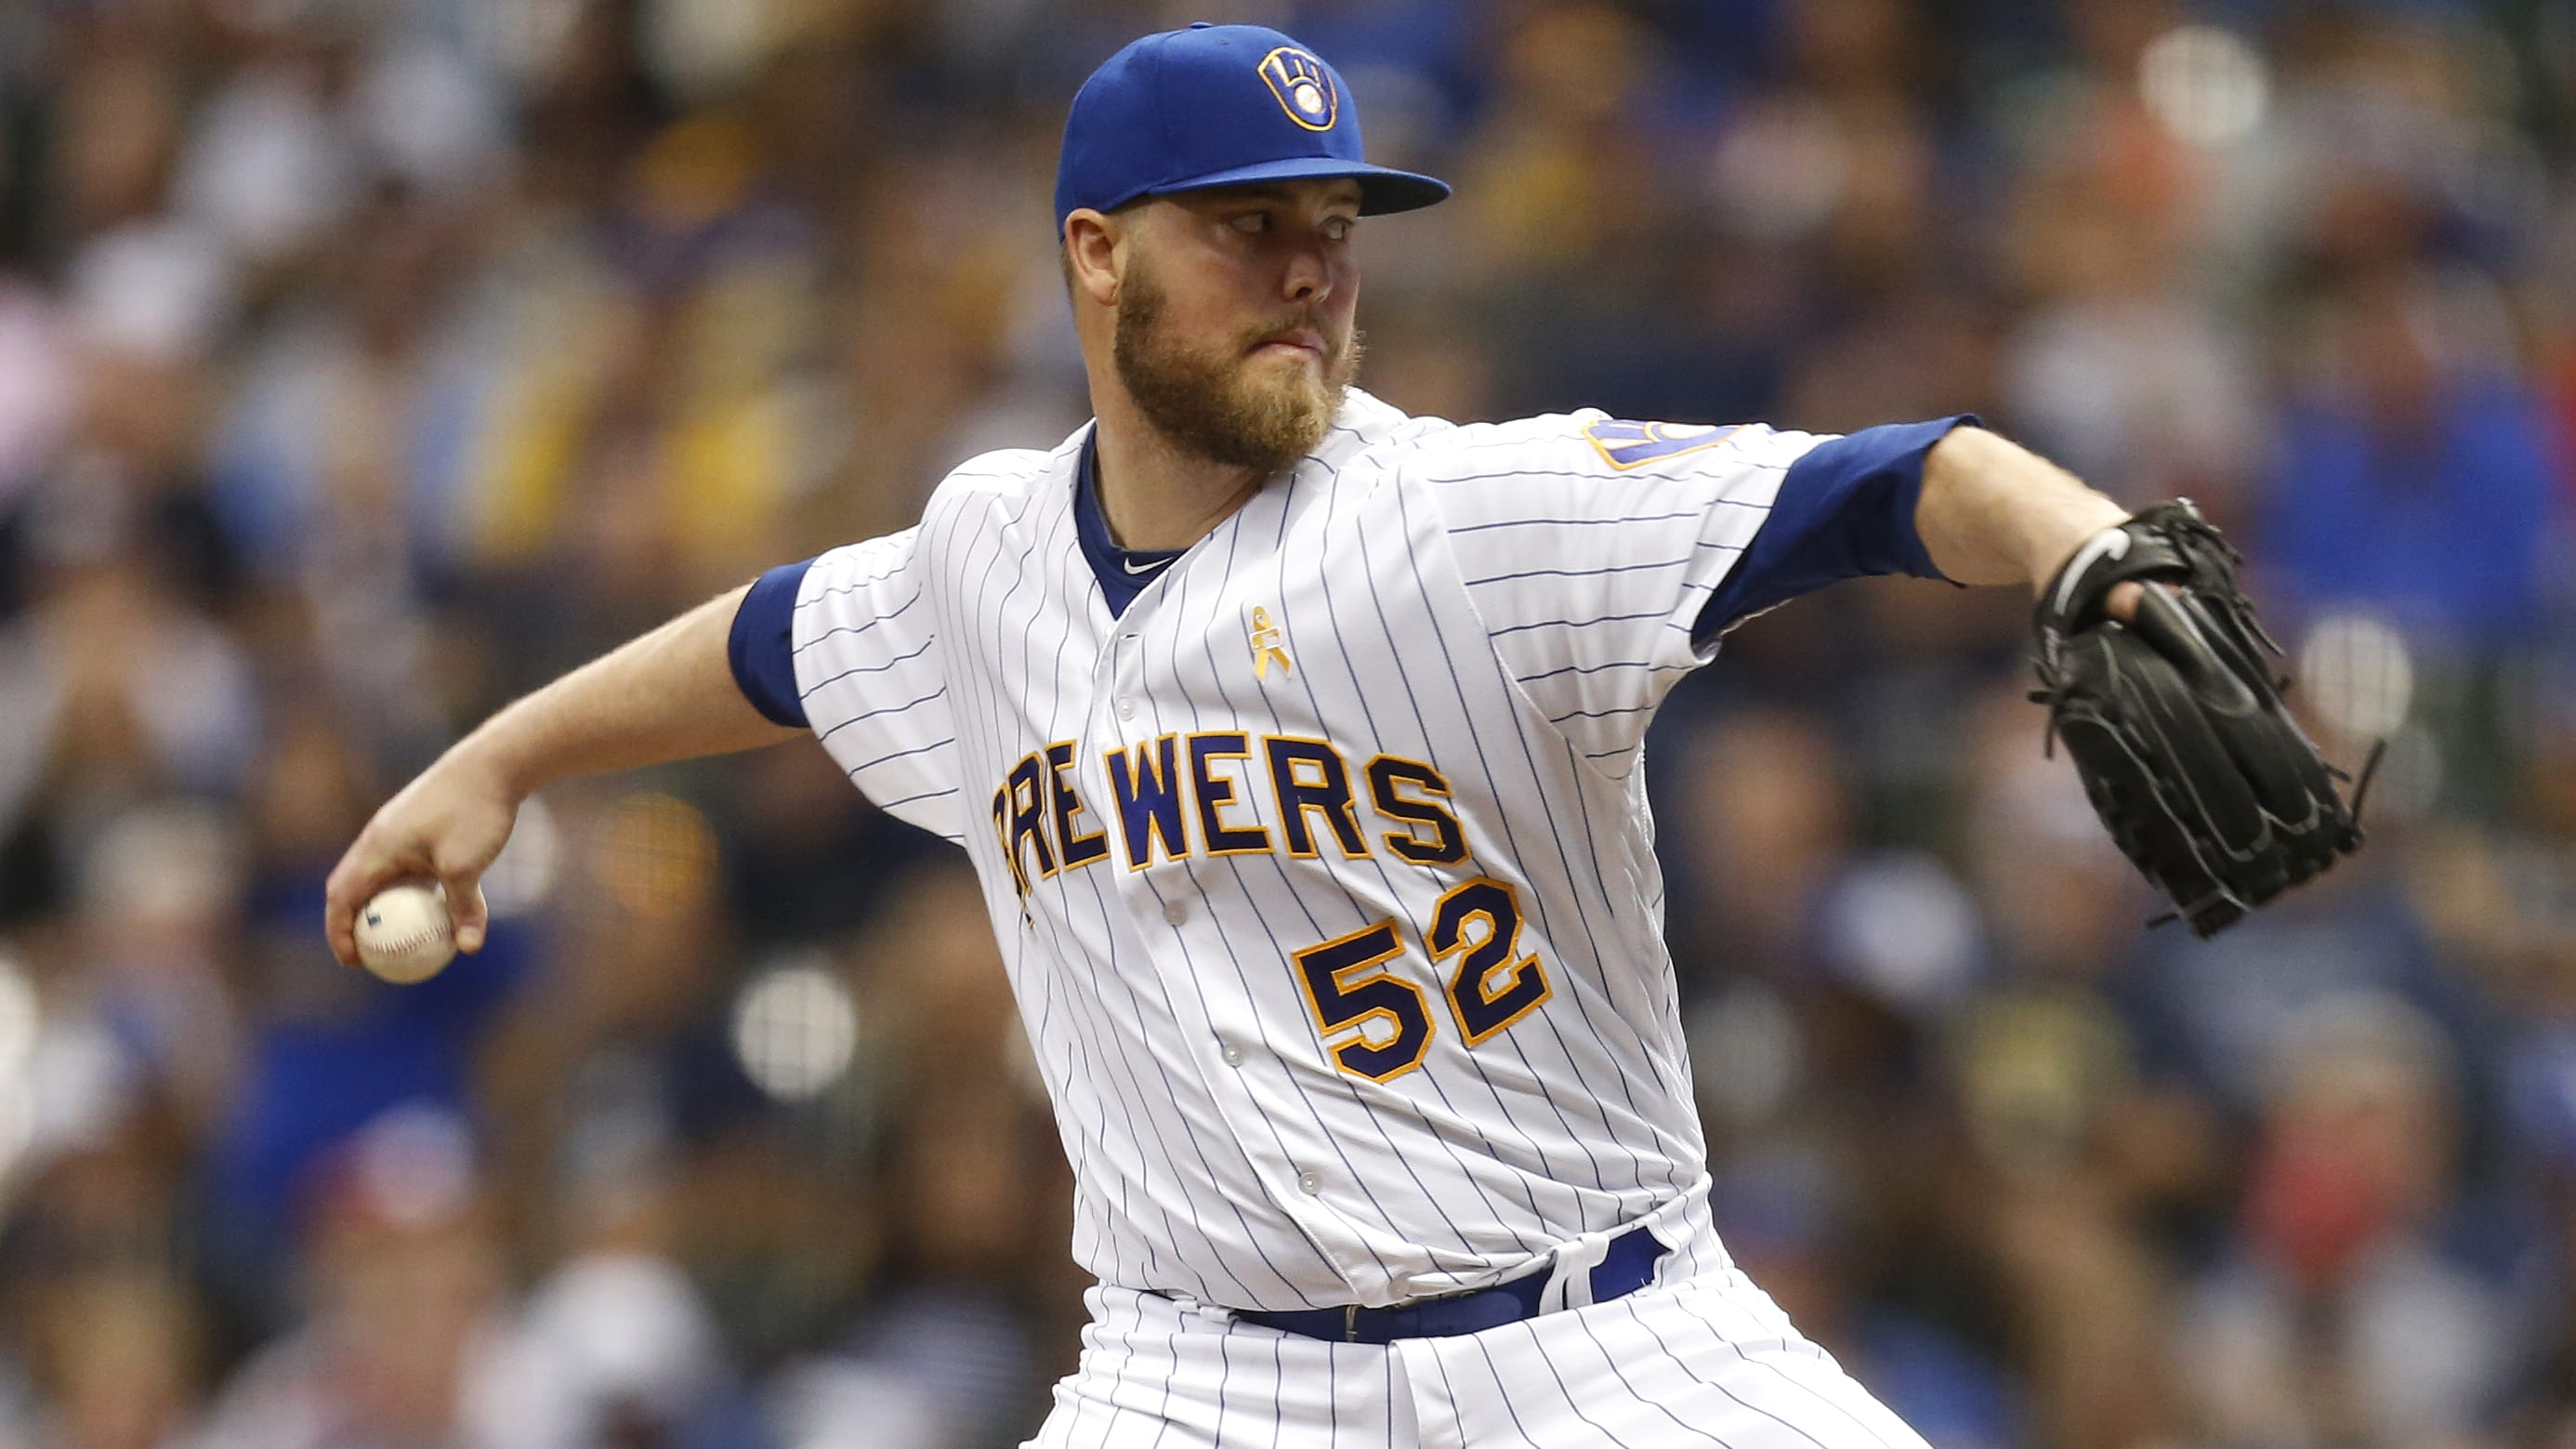 MILWAUKEE, WI - SEPTEMBER 01: Jimmy Nelson #52 of the Milwaukee Brewers pitches during the first inning against the Washington Nationals at Miller Park on September 01, 2017 in Milwaukee, WI. (Photo by Mike McGinnis/Getty Images)